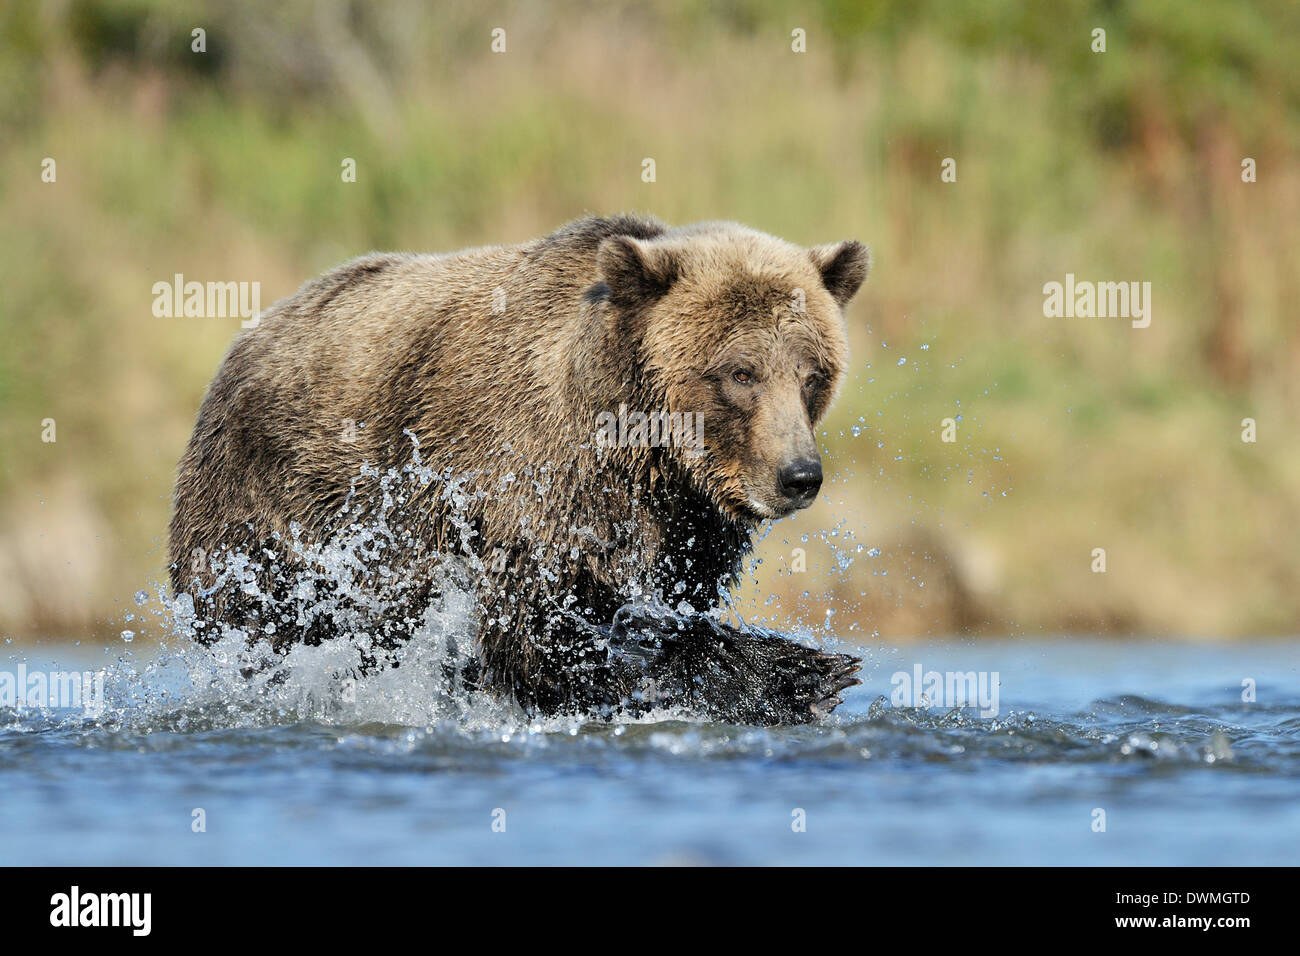 Grizzly bear (Ursus arctos horribilis) fishing in water and fish in front. - Stock Image